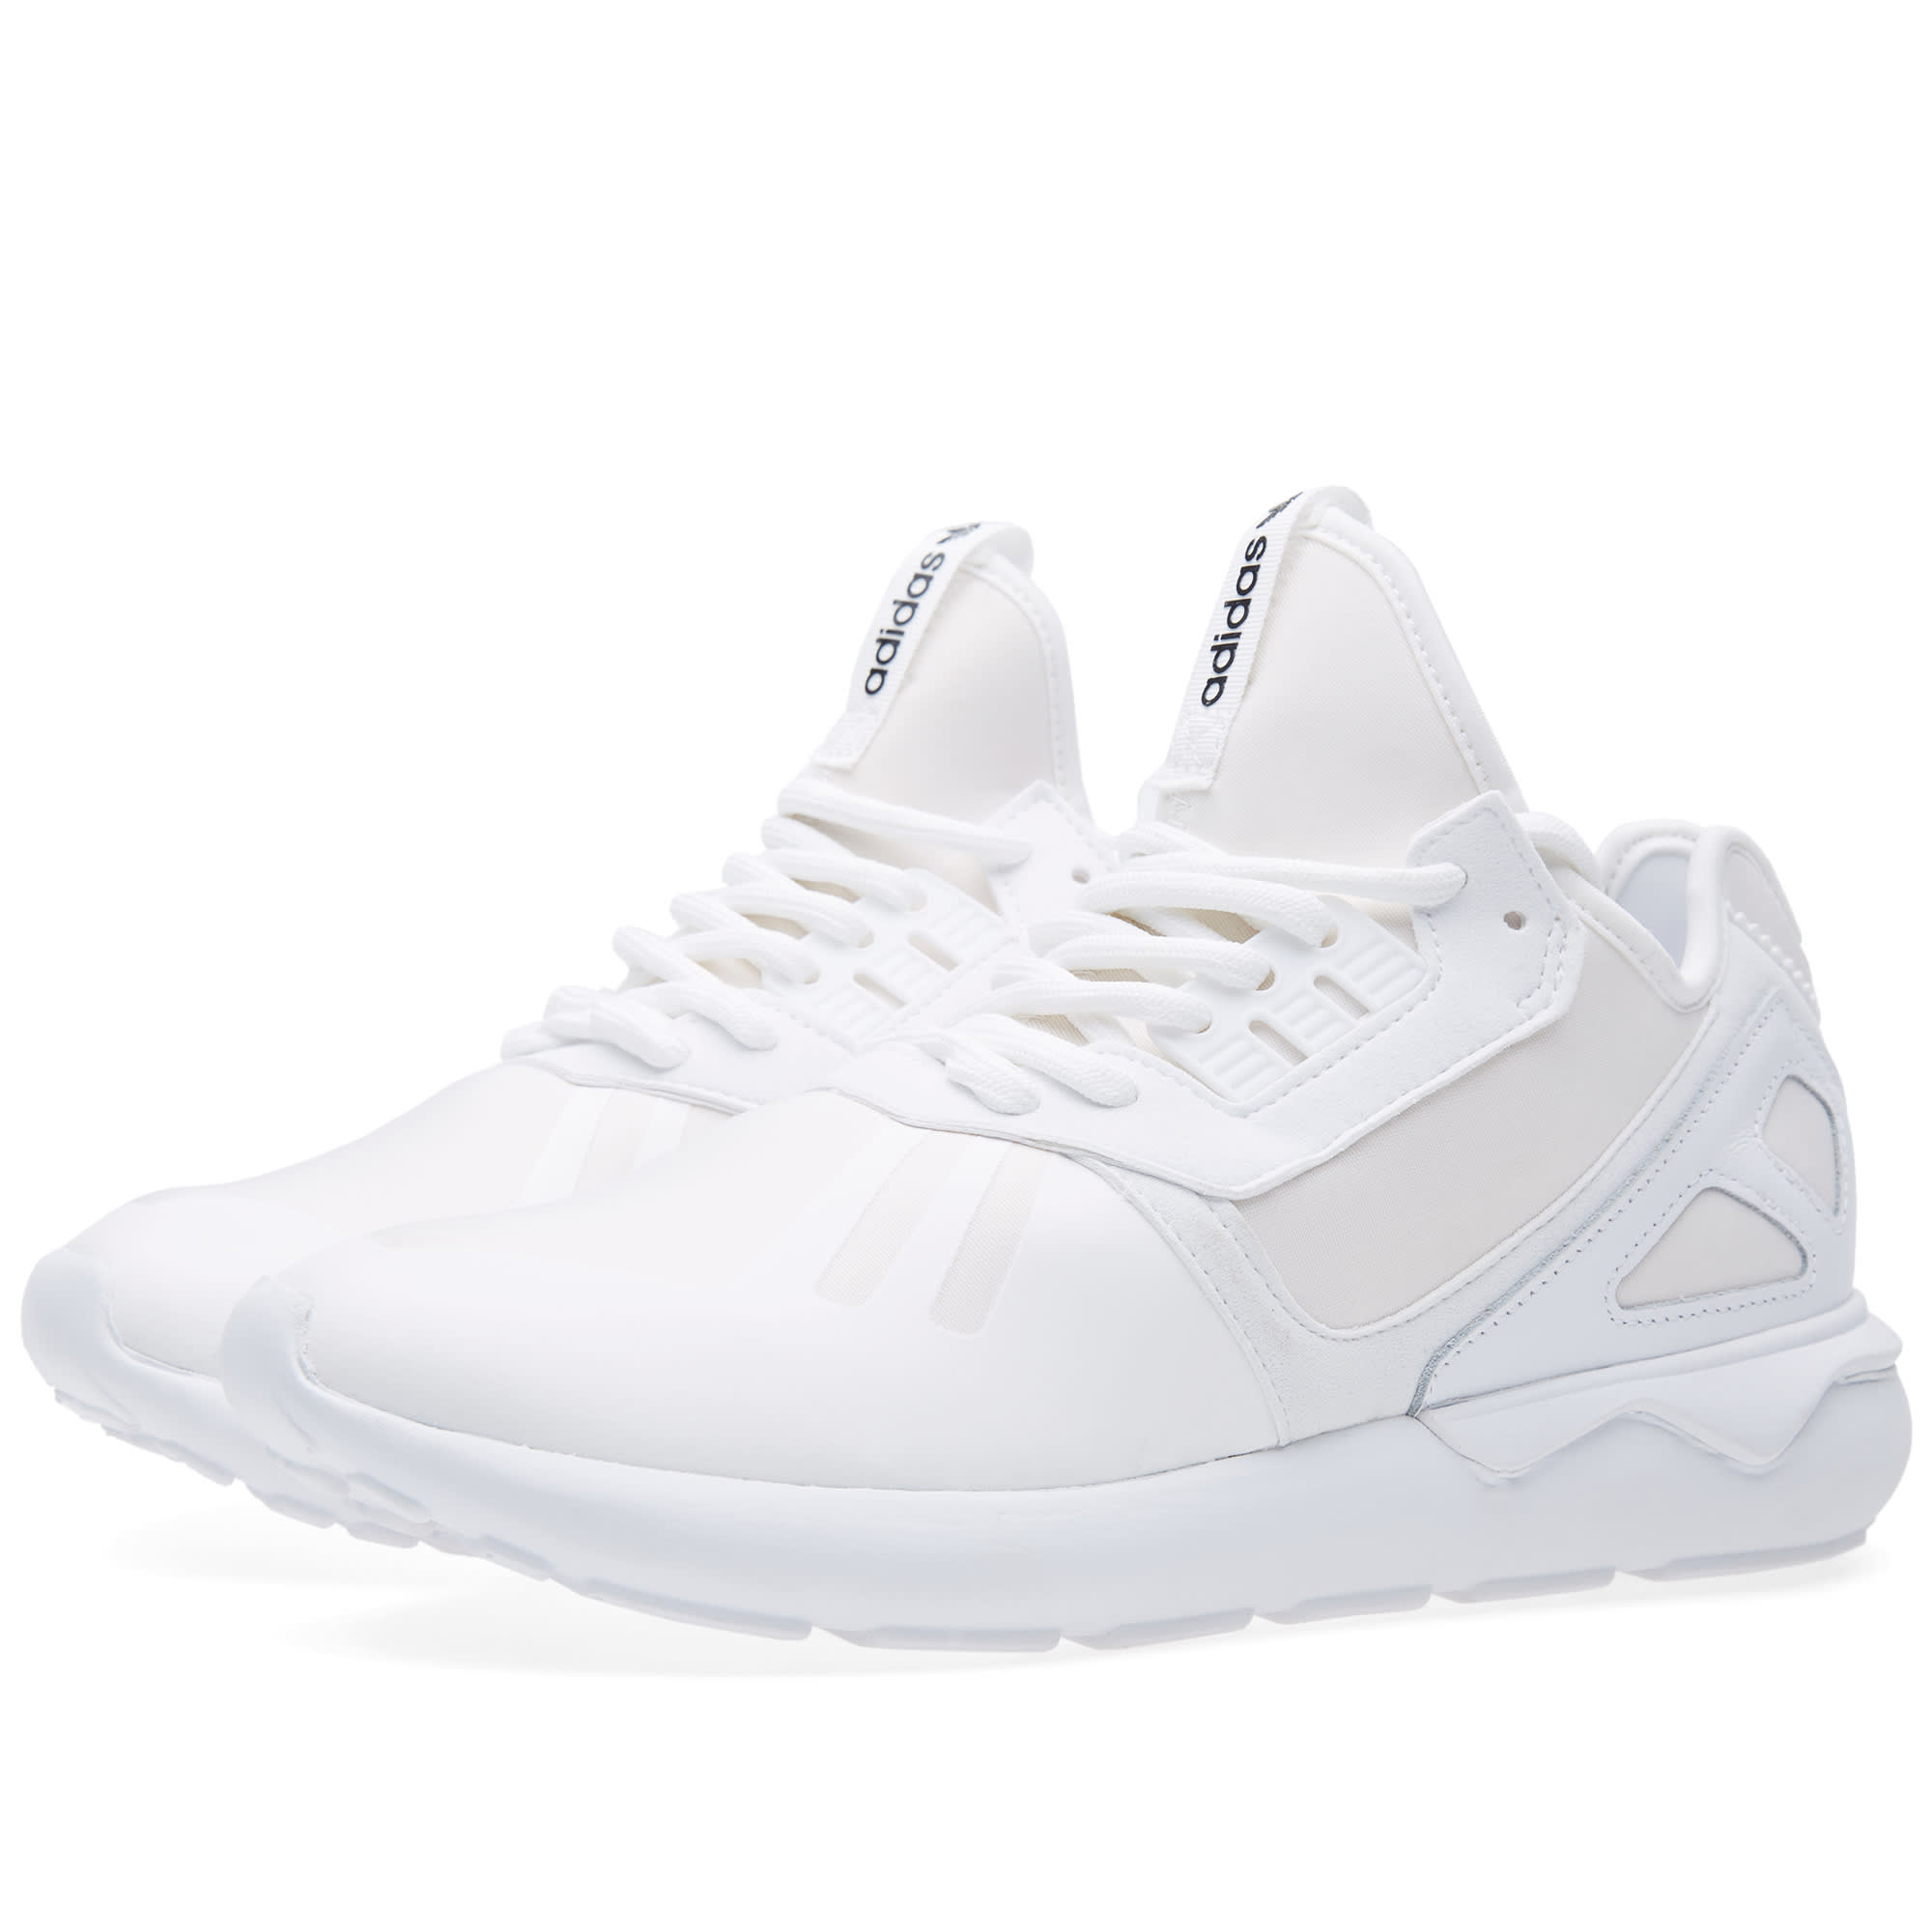 premium selection 9c5e2 733e7 Adidas Tubular Runner White   Core Black   END.